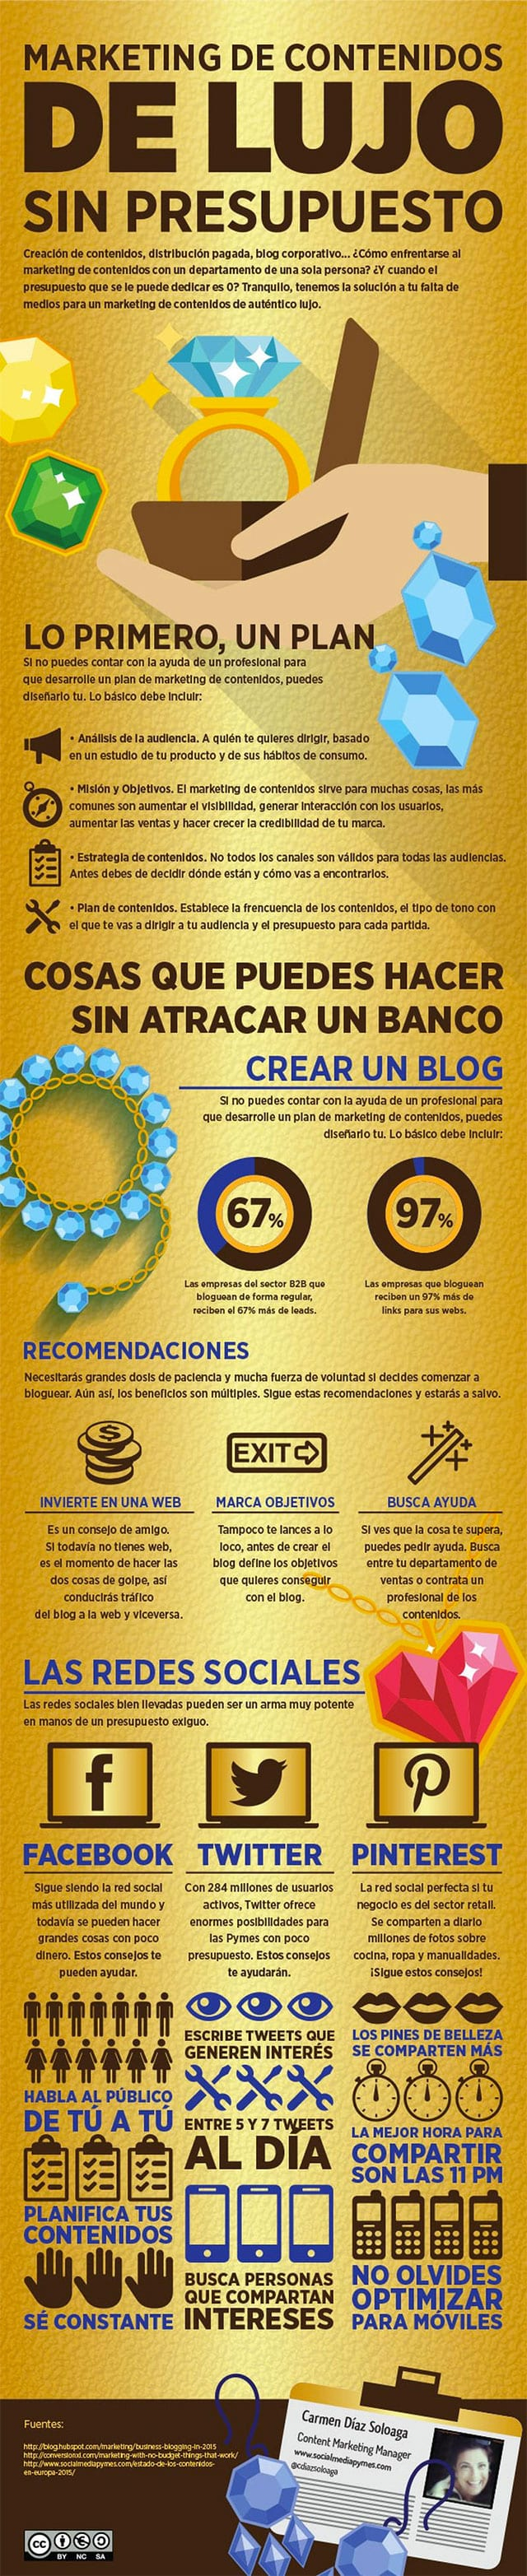 Consigue Marketing de Contenidos exclusivo y gratis